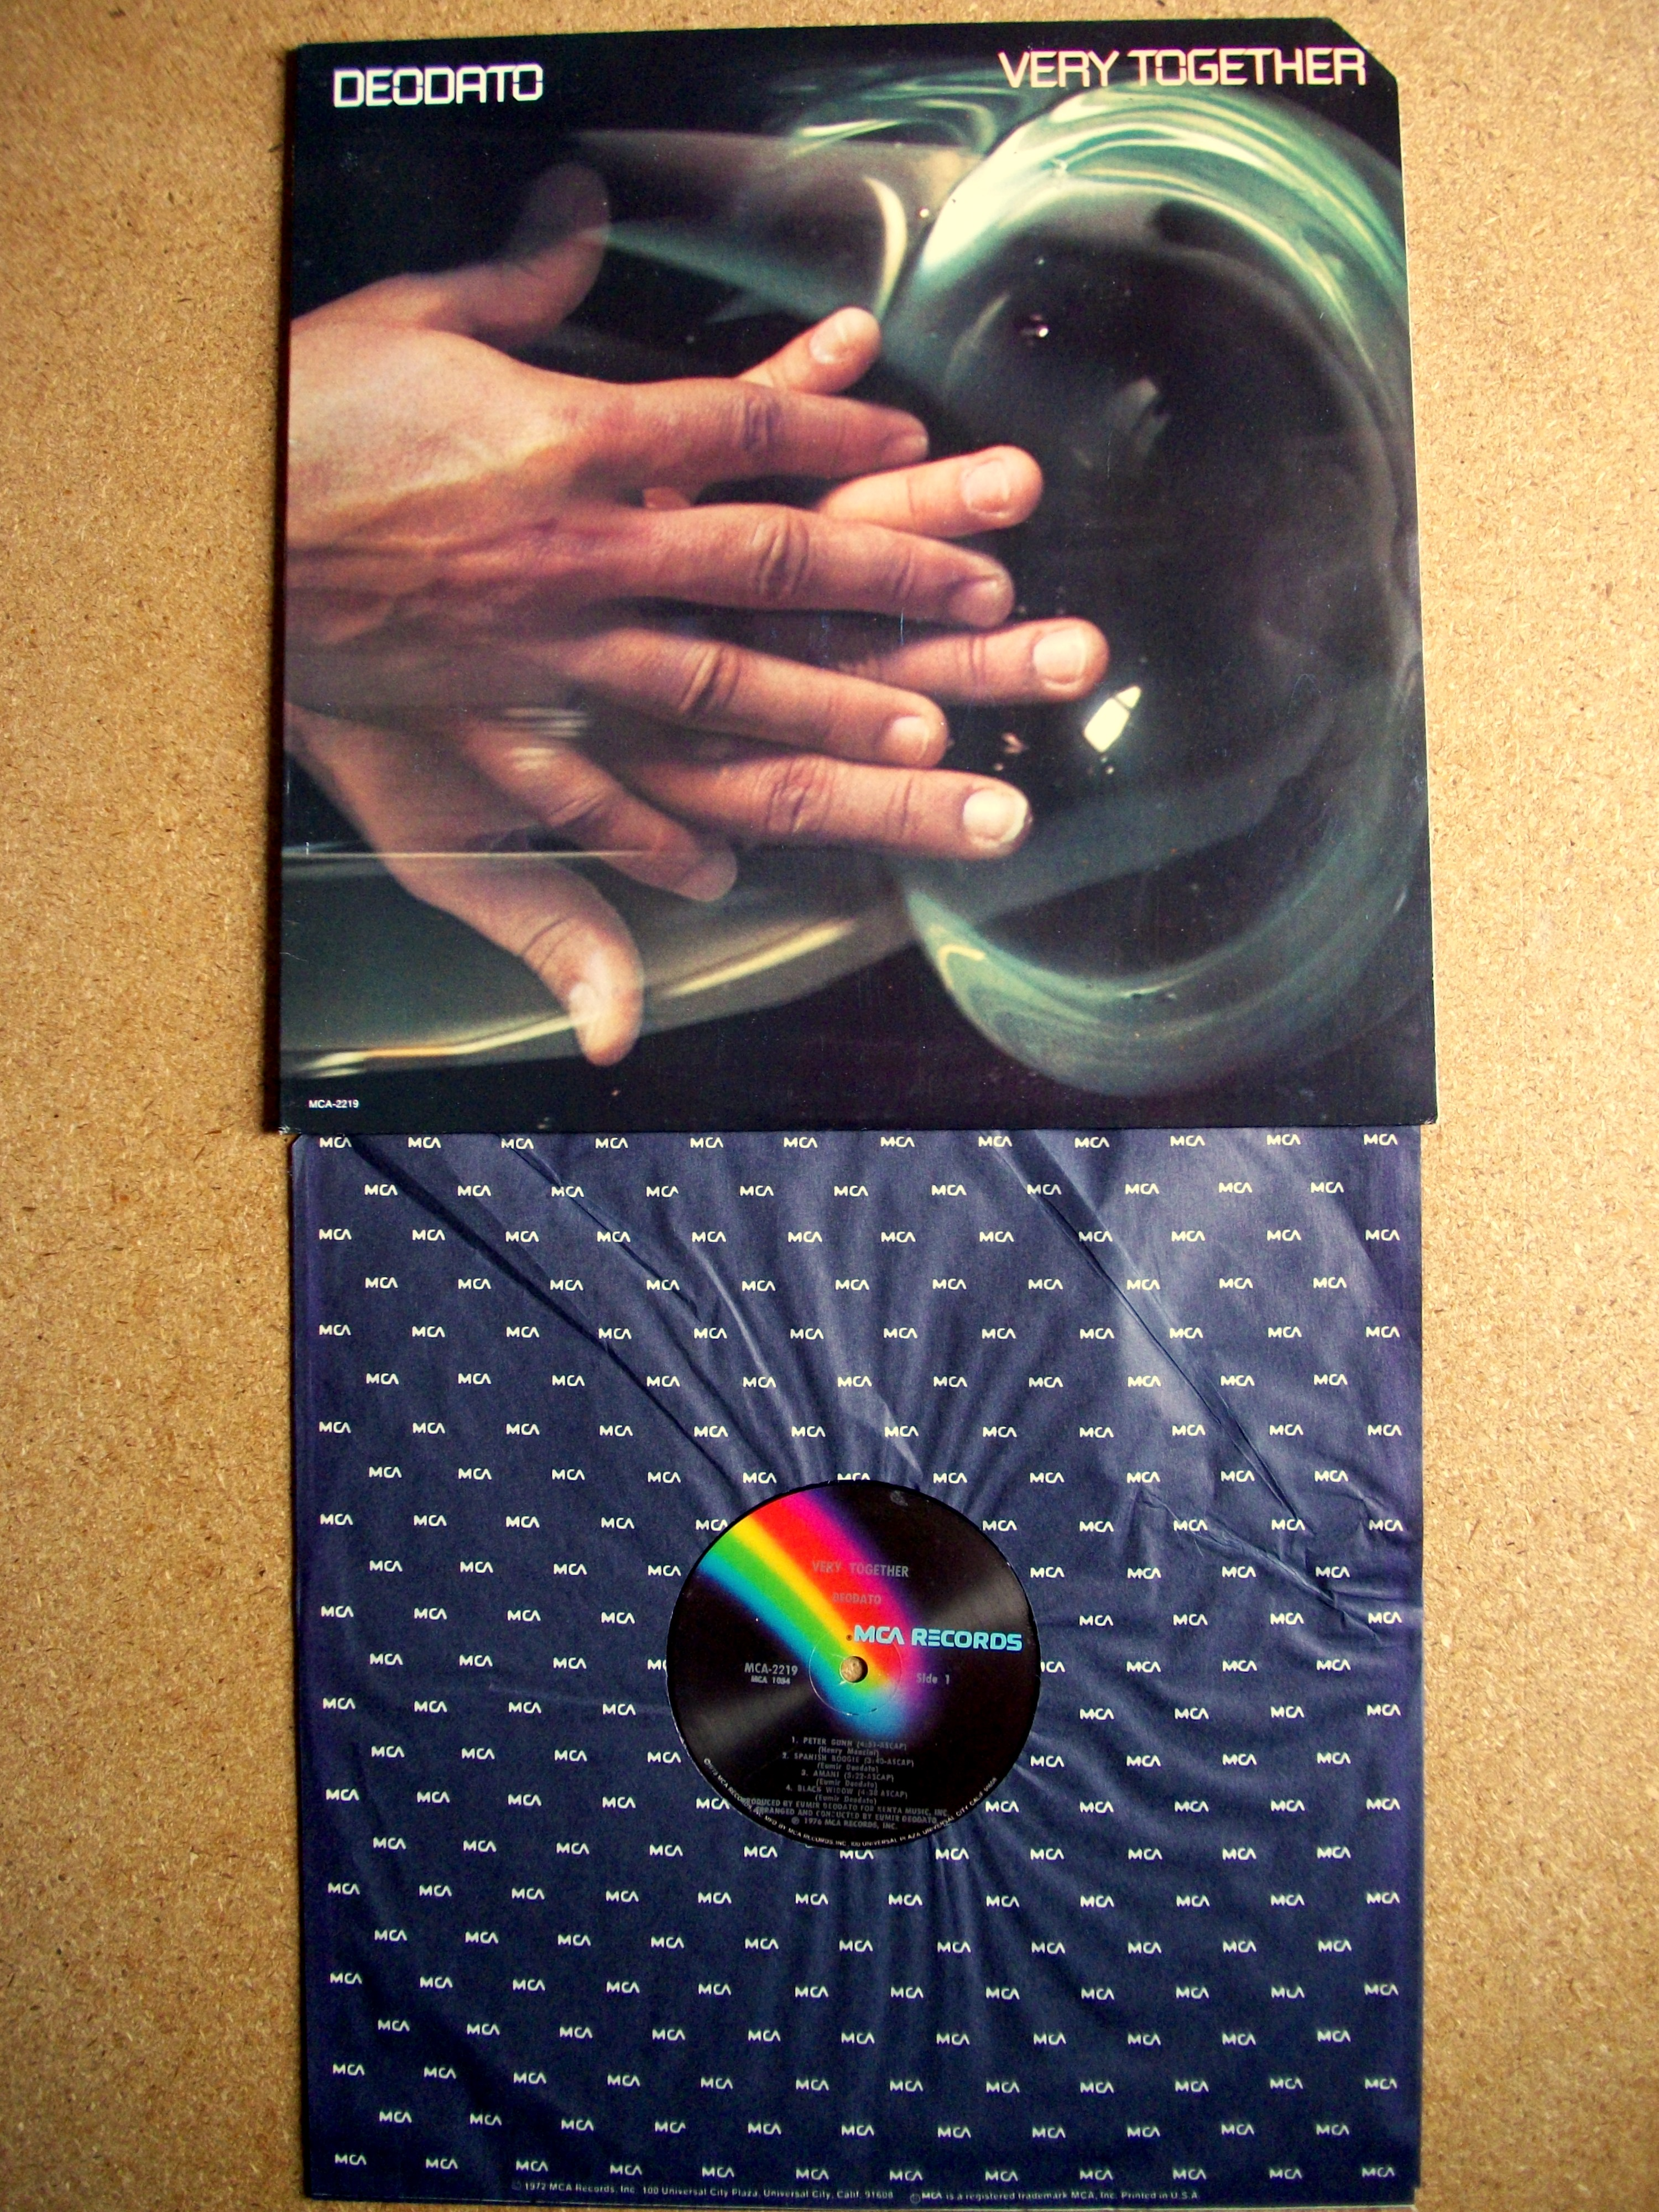 Sinister Vinyl Collection Eumir Deodato Very Together